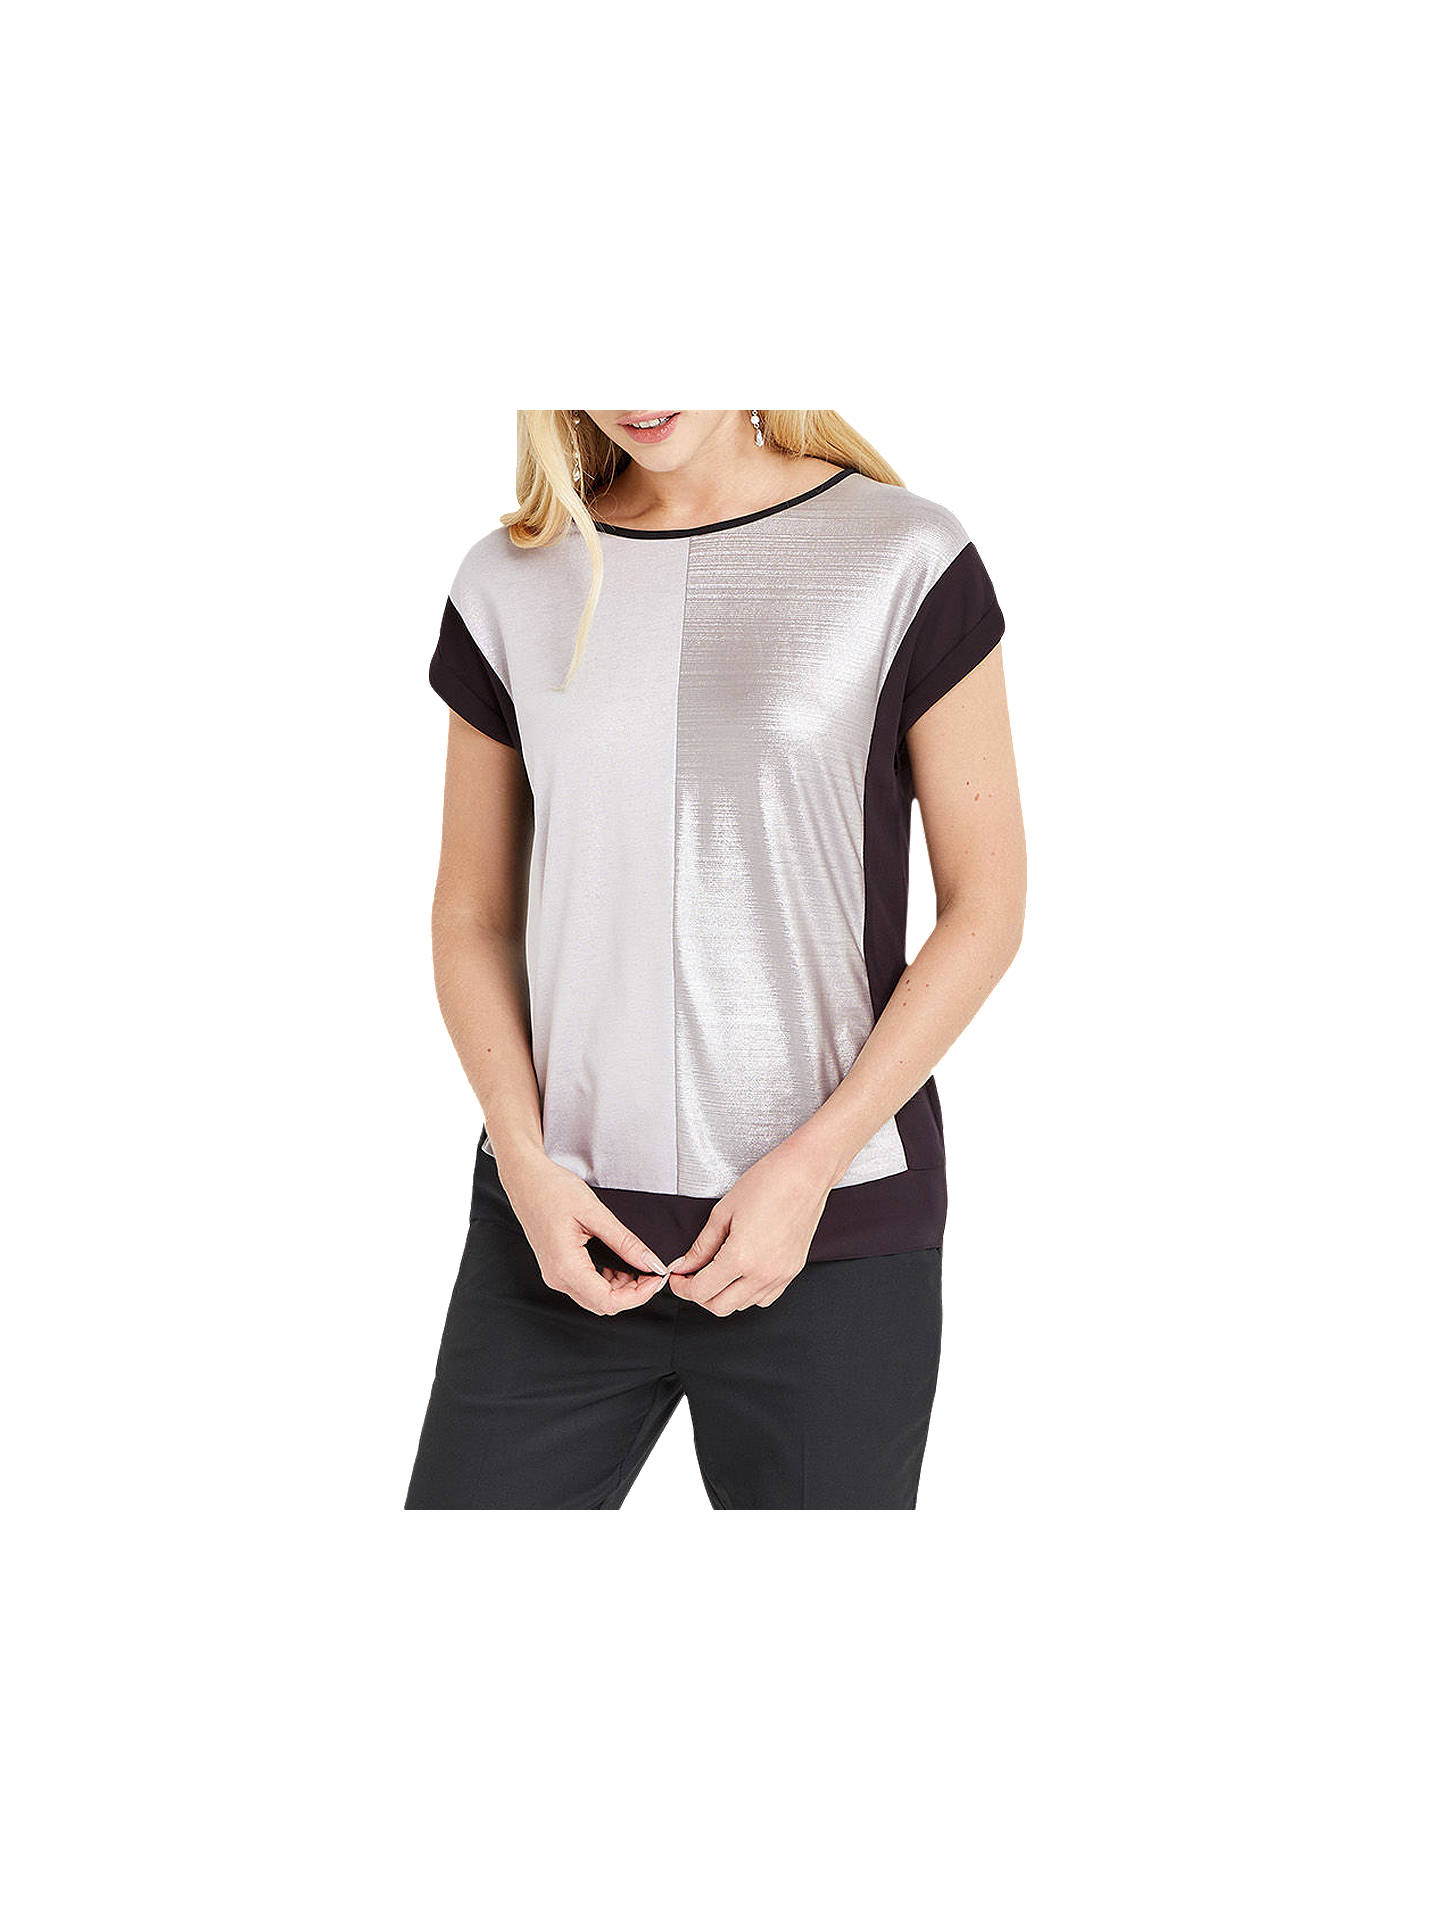 BuyOasis Colourblock Liquid Top, Multi/Silver, XS Online at johnlewis.com